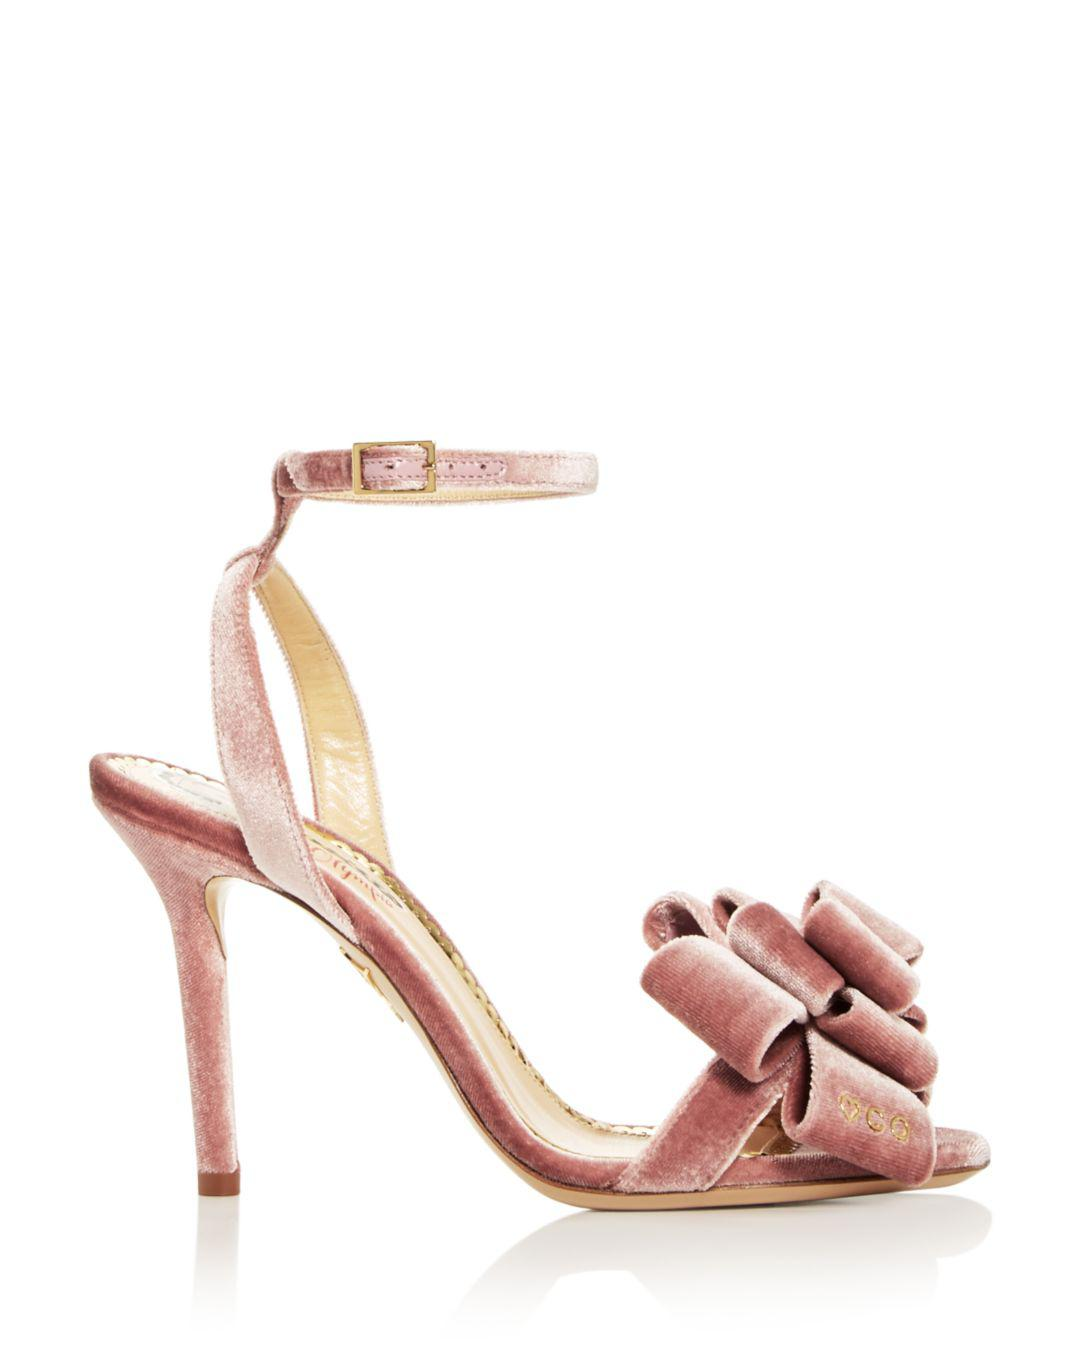 c833c9d4a6a0 Lyst - Charlotte Olympia Women s Velvet Bow High-heel Sandals in Pink